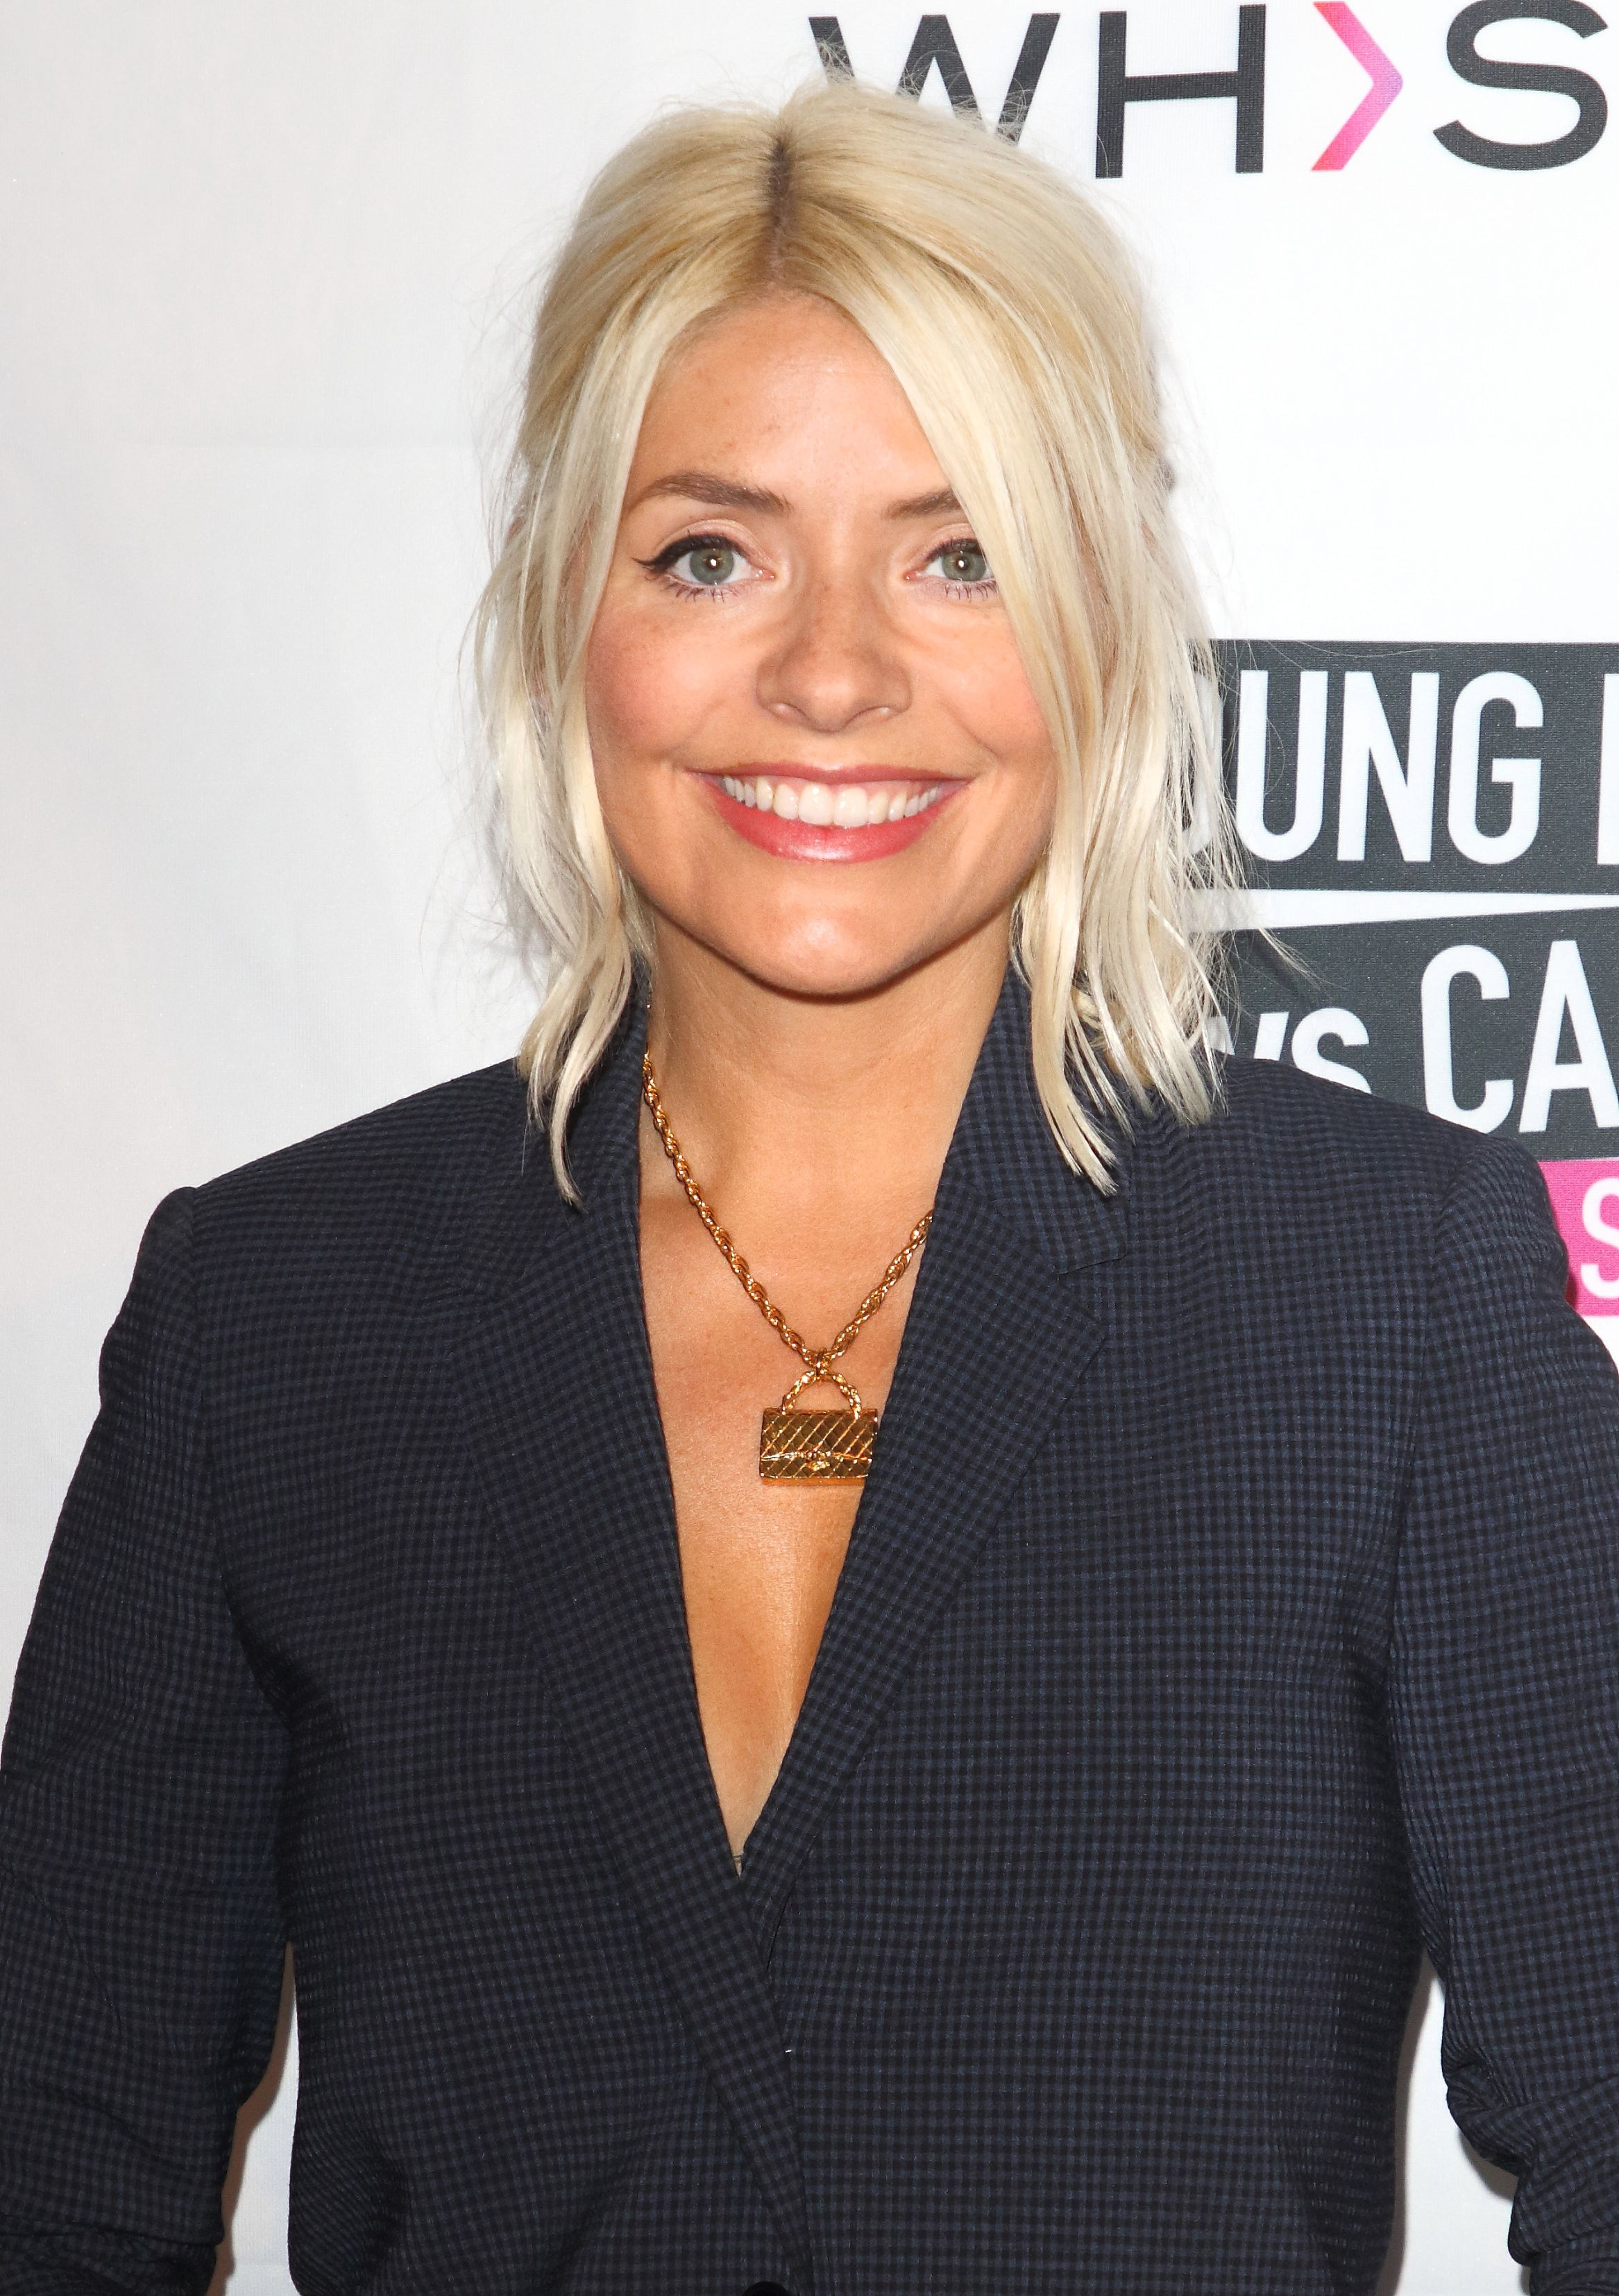 The foundation that gives Holly Willoughby flawless skin on camera